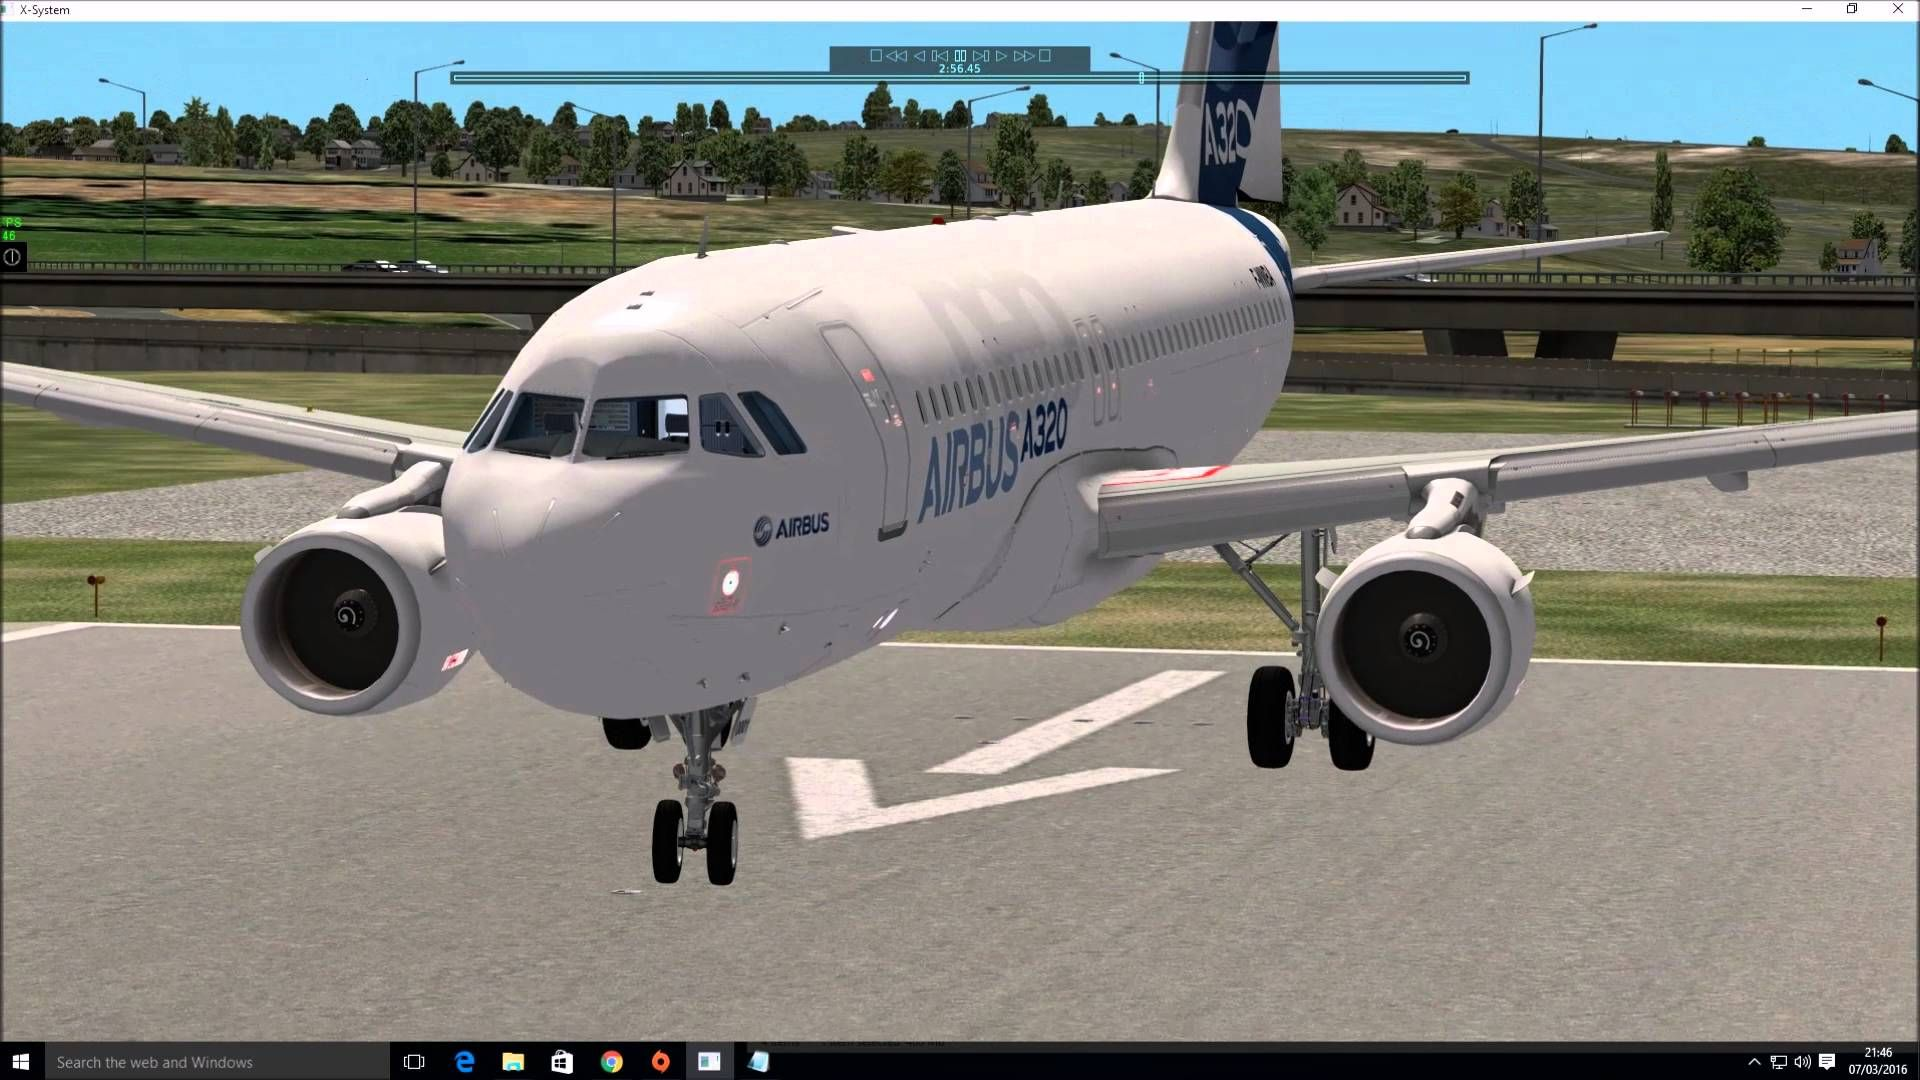 X-Plane Aircraft - Payware, Freeware and Stock Aircraft | airplanes